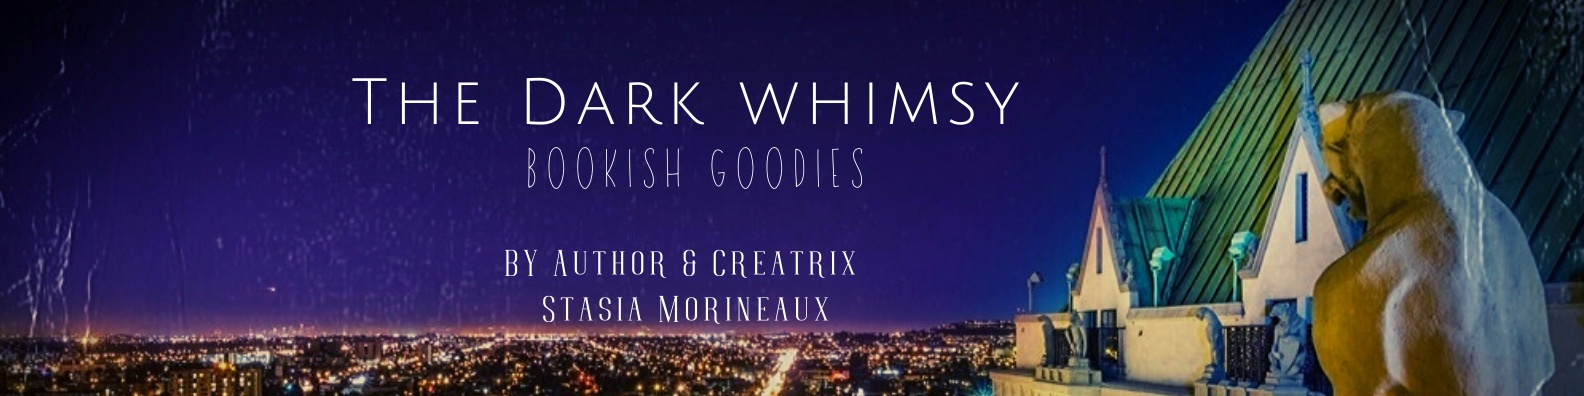 TheDarkWhimsy Cover